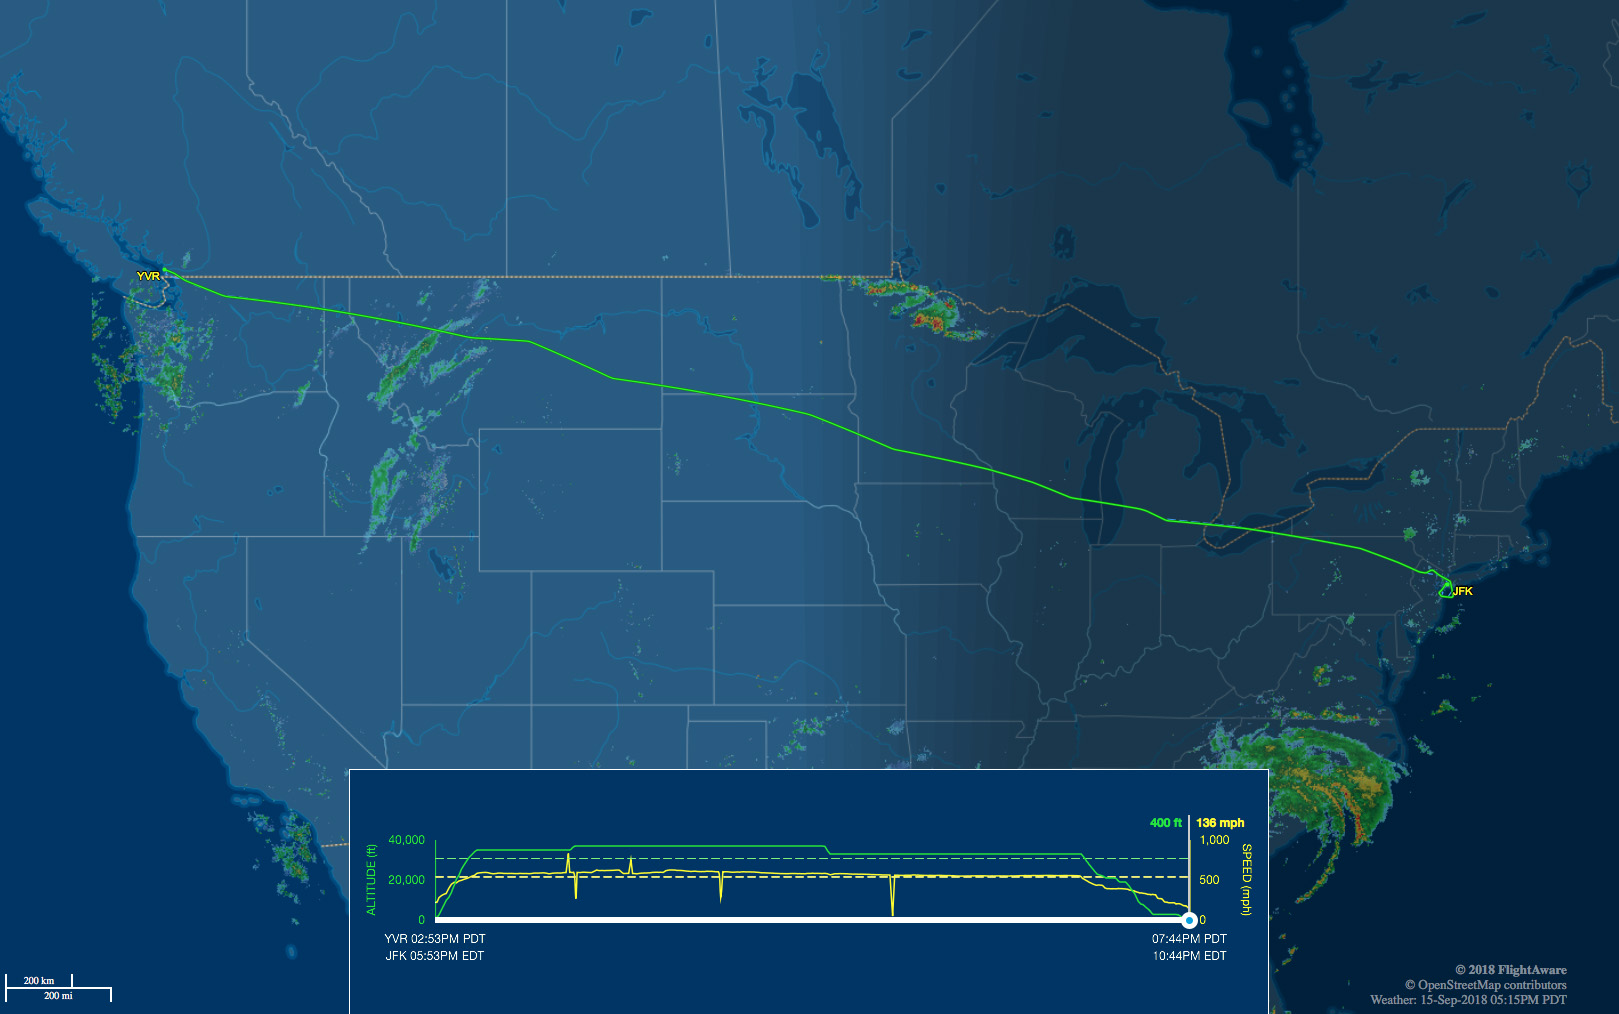 YVR to JFK route map